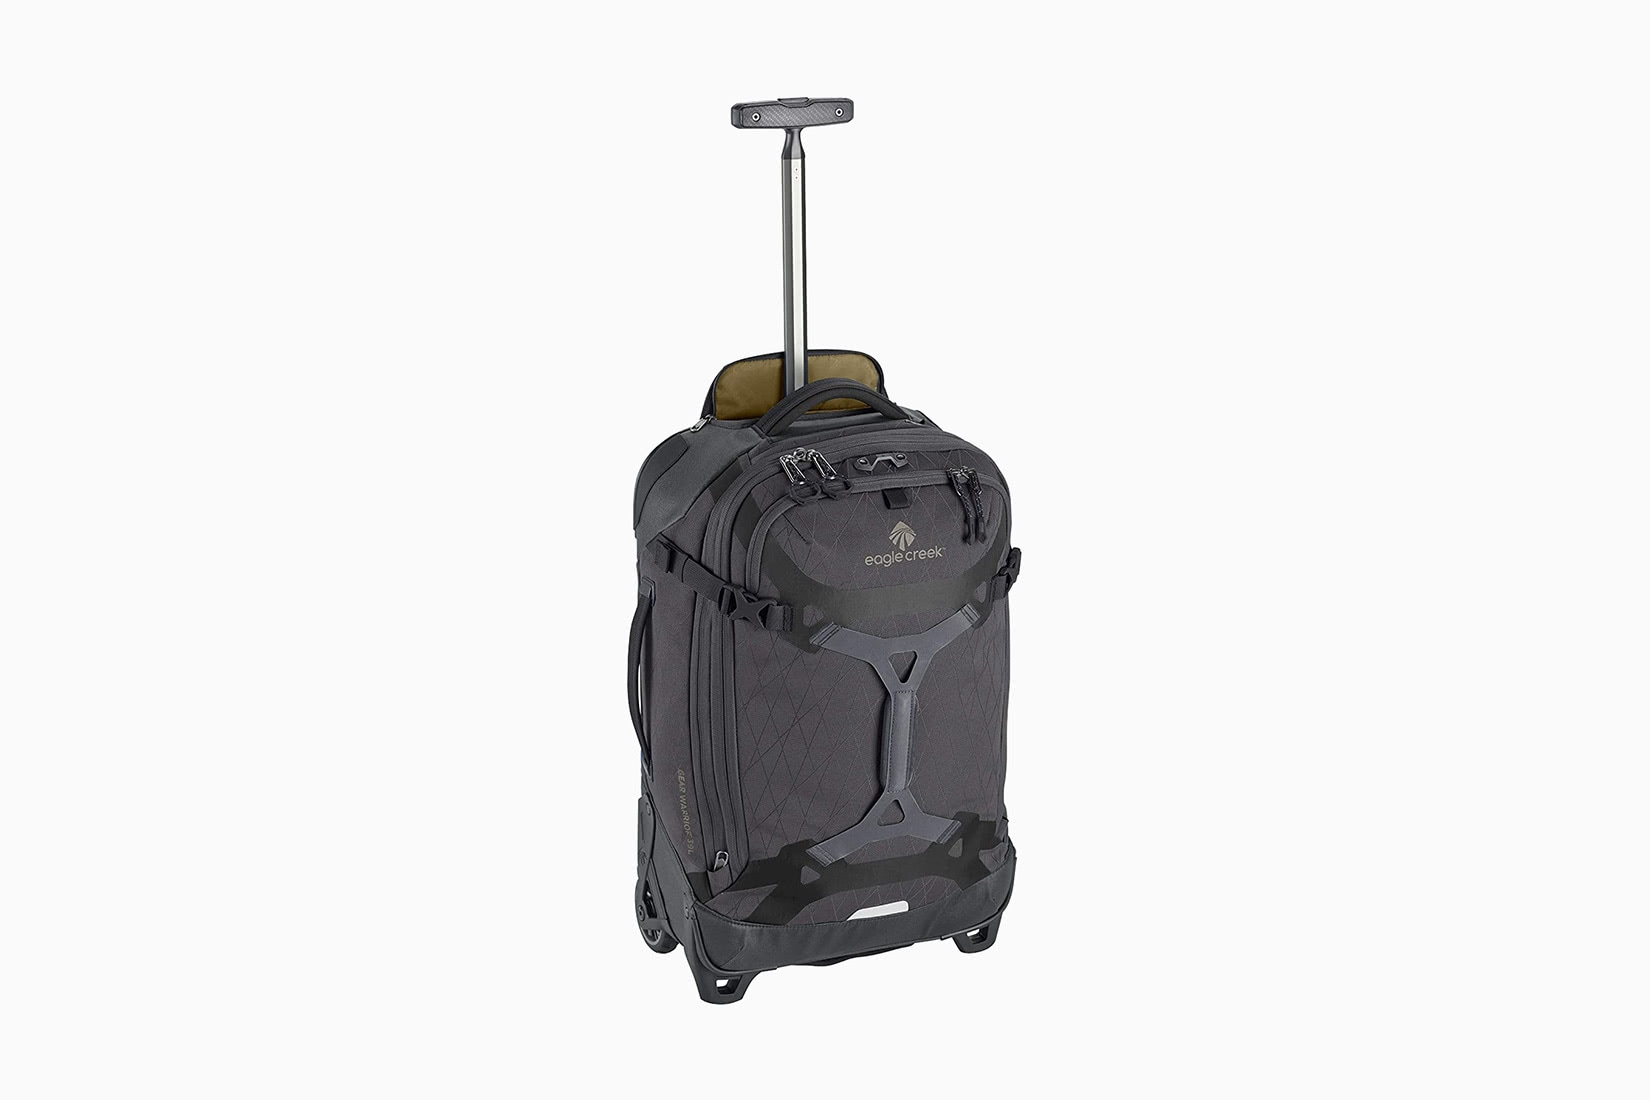 best carry-on luggage travel eagle creek wheel duffel - Luxe Digital